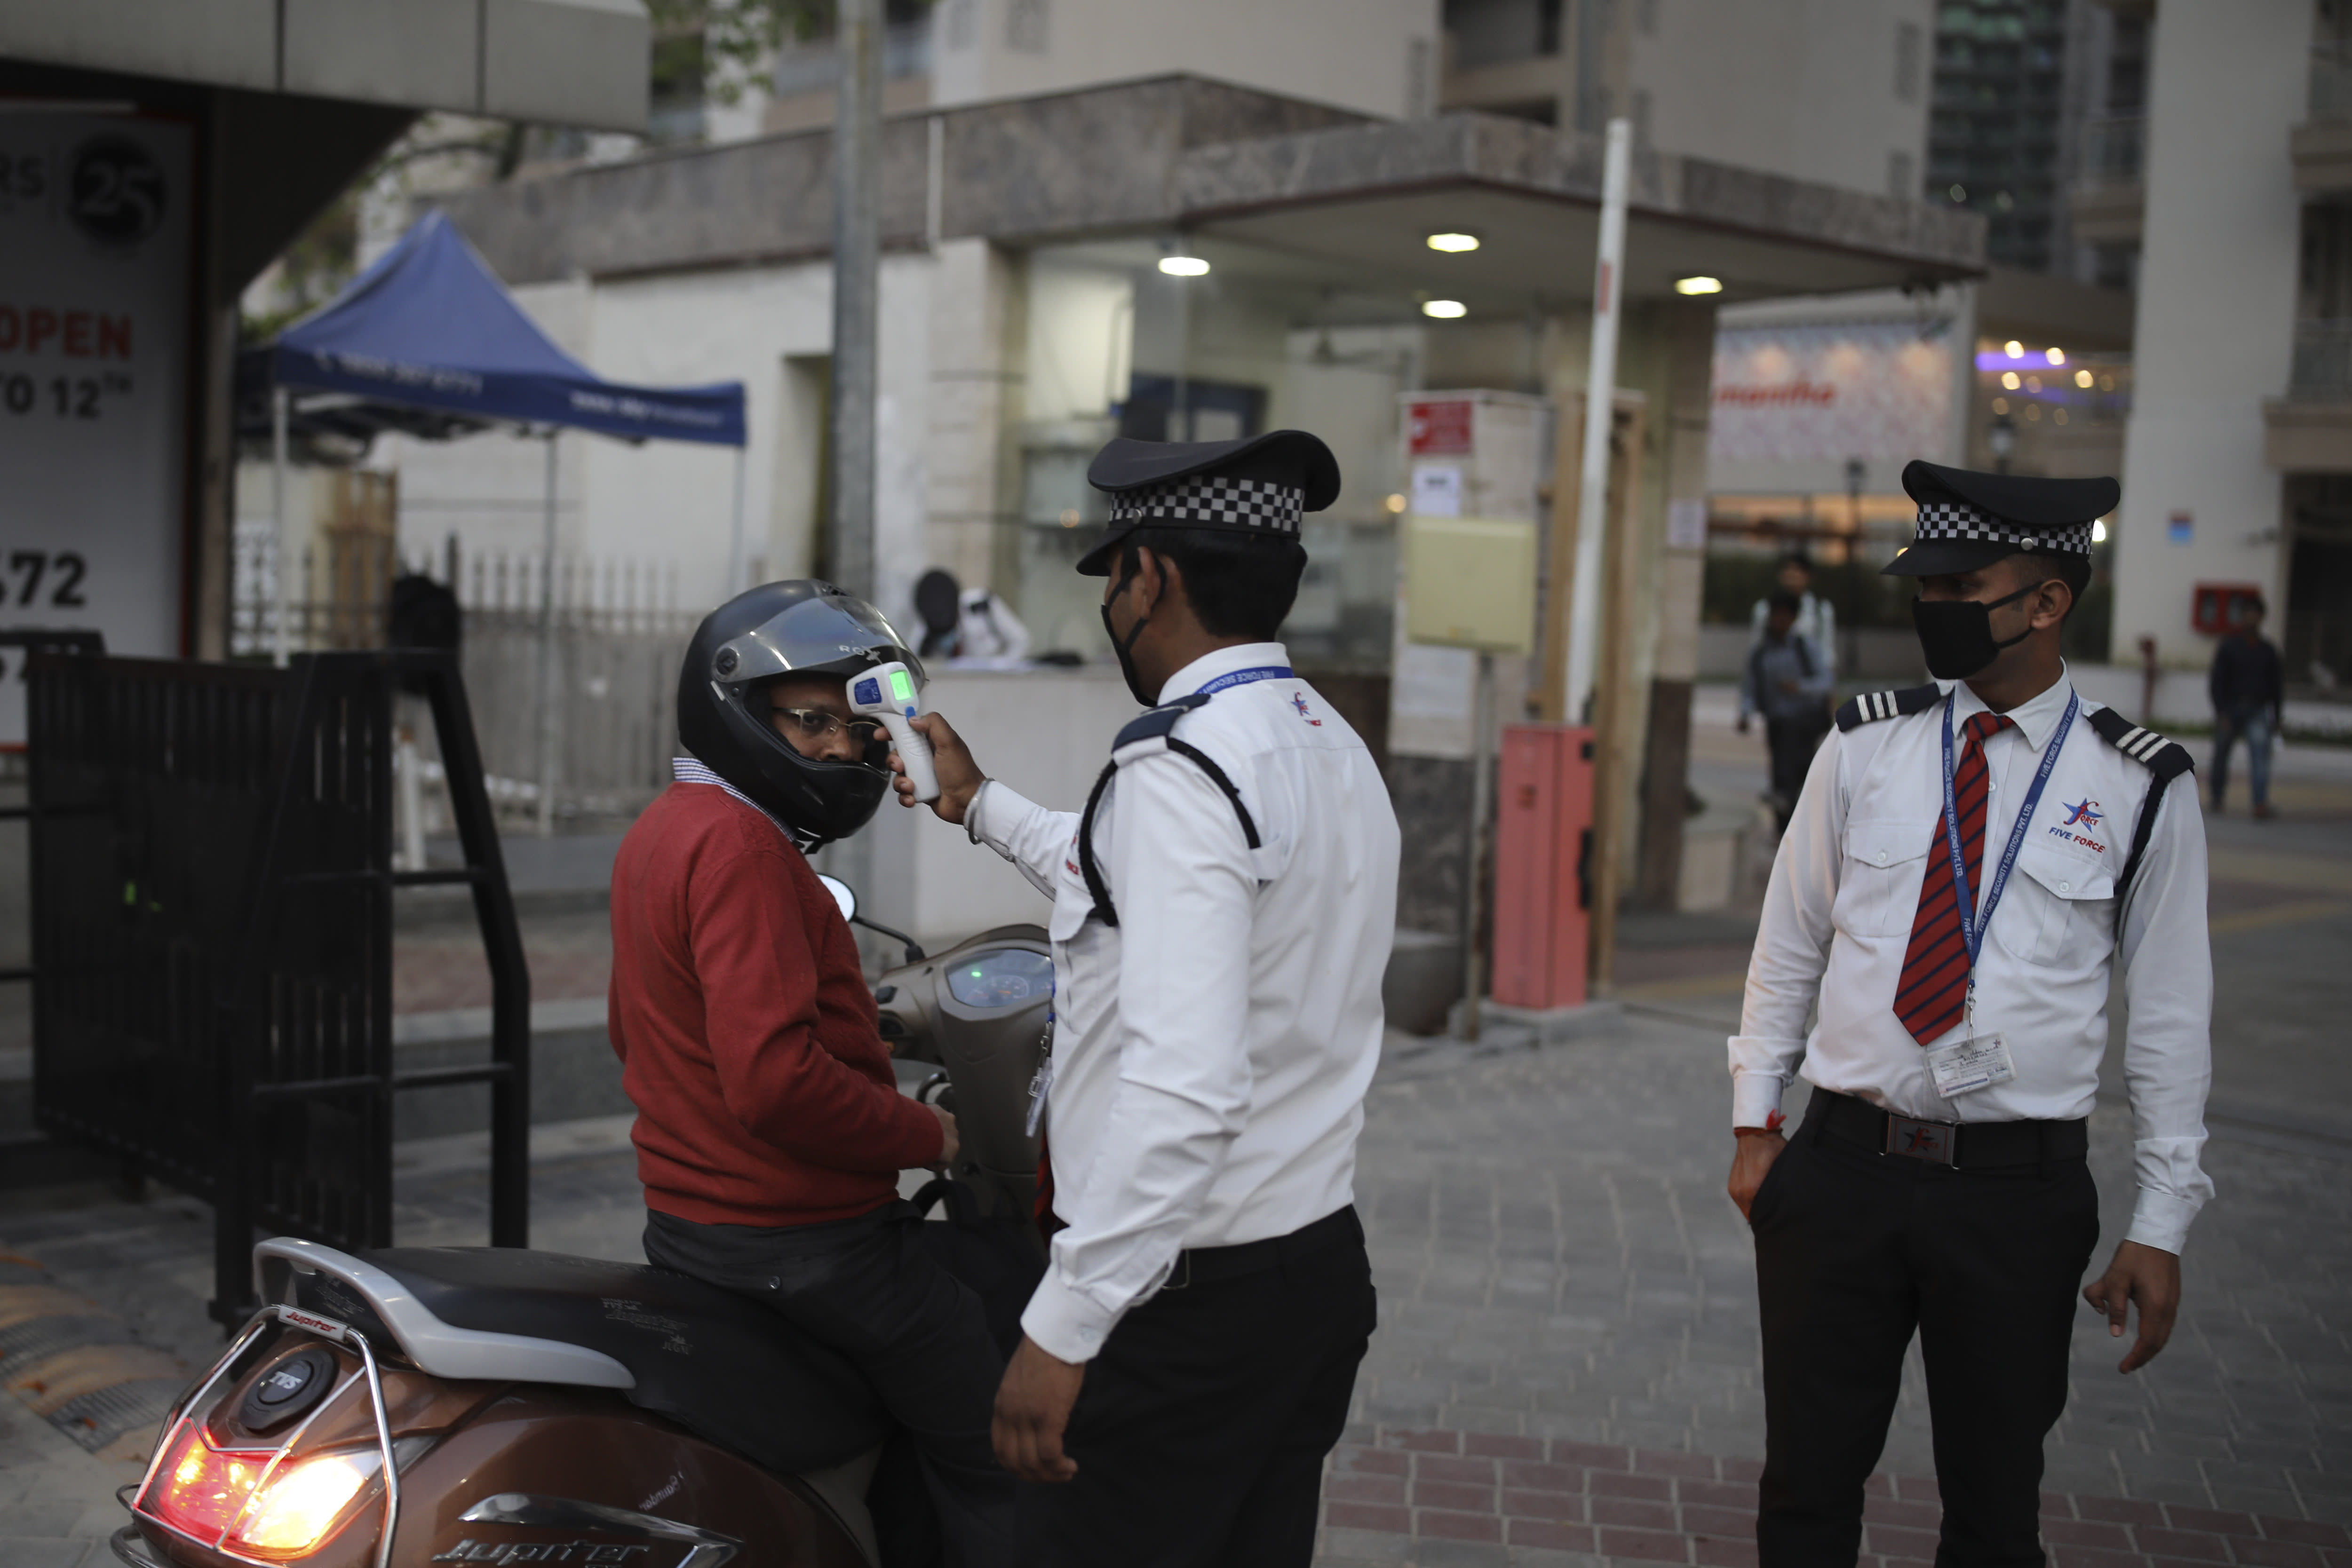 A private security guard checks the body temperature of a motorist as a precautionary measure against COVID-19 before letting him inside a residential complex in Greater Noida, a suburb of New Delhi, India, Saturday, March 21, 2020. For most people, the new coronavirus causes only mild or moderate symptoms. For some it can cause more severe illness. (AP Photo/Altaf Qadri)